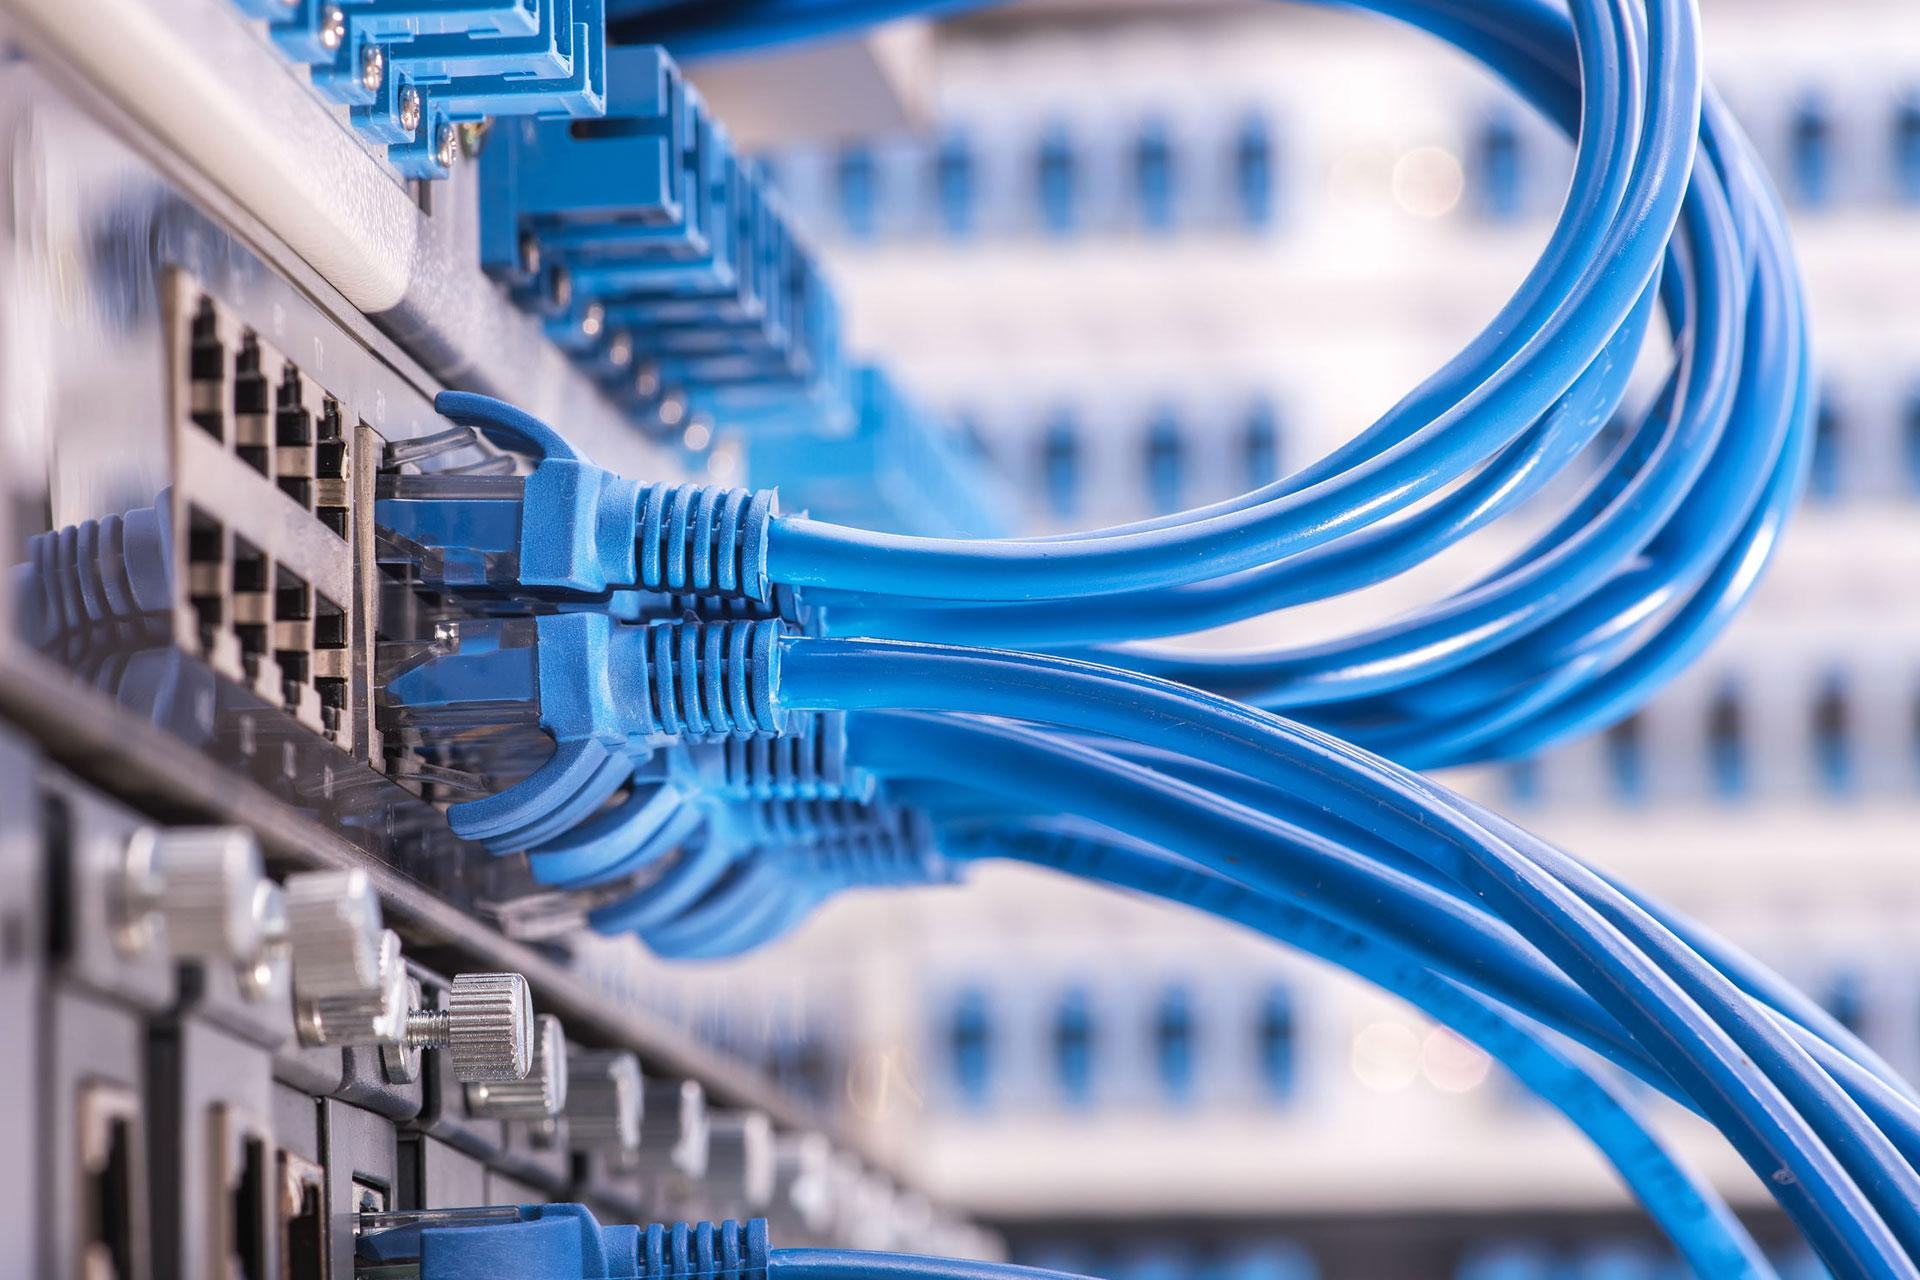 Here is what businesses need to know about network infrastructure